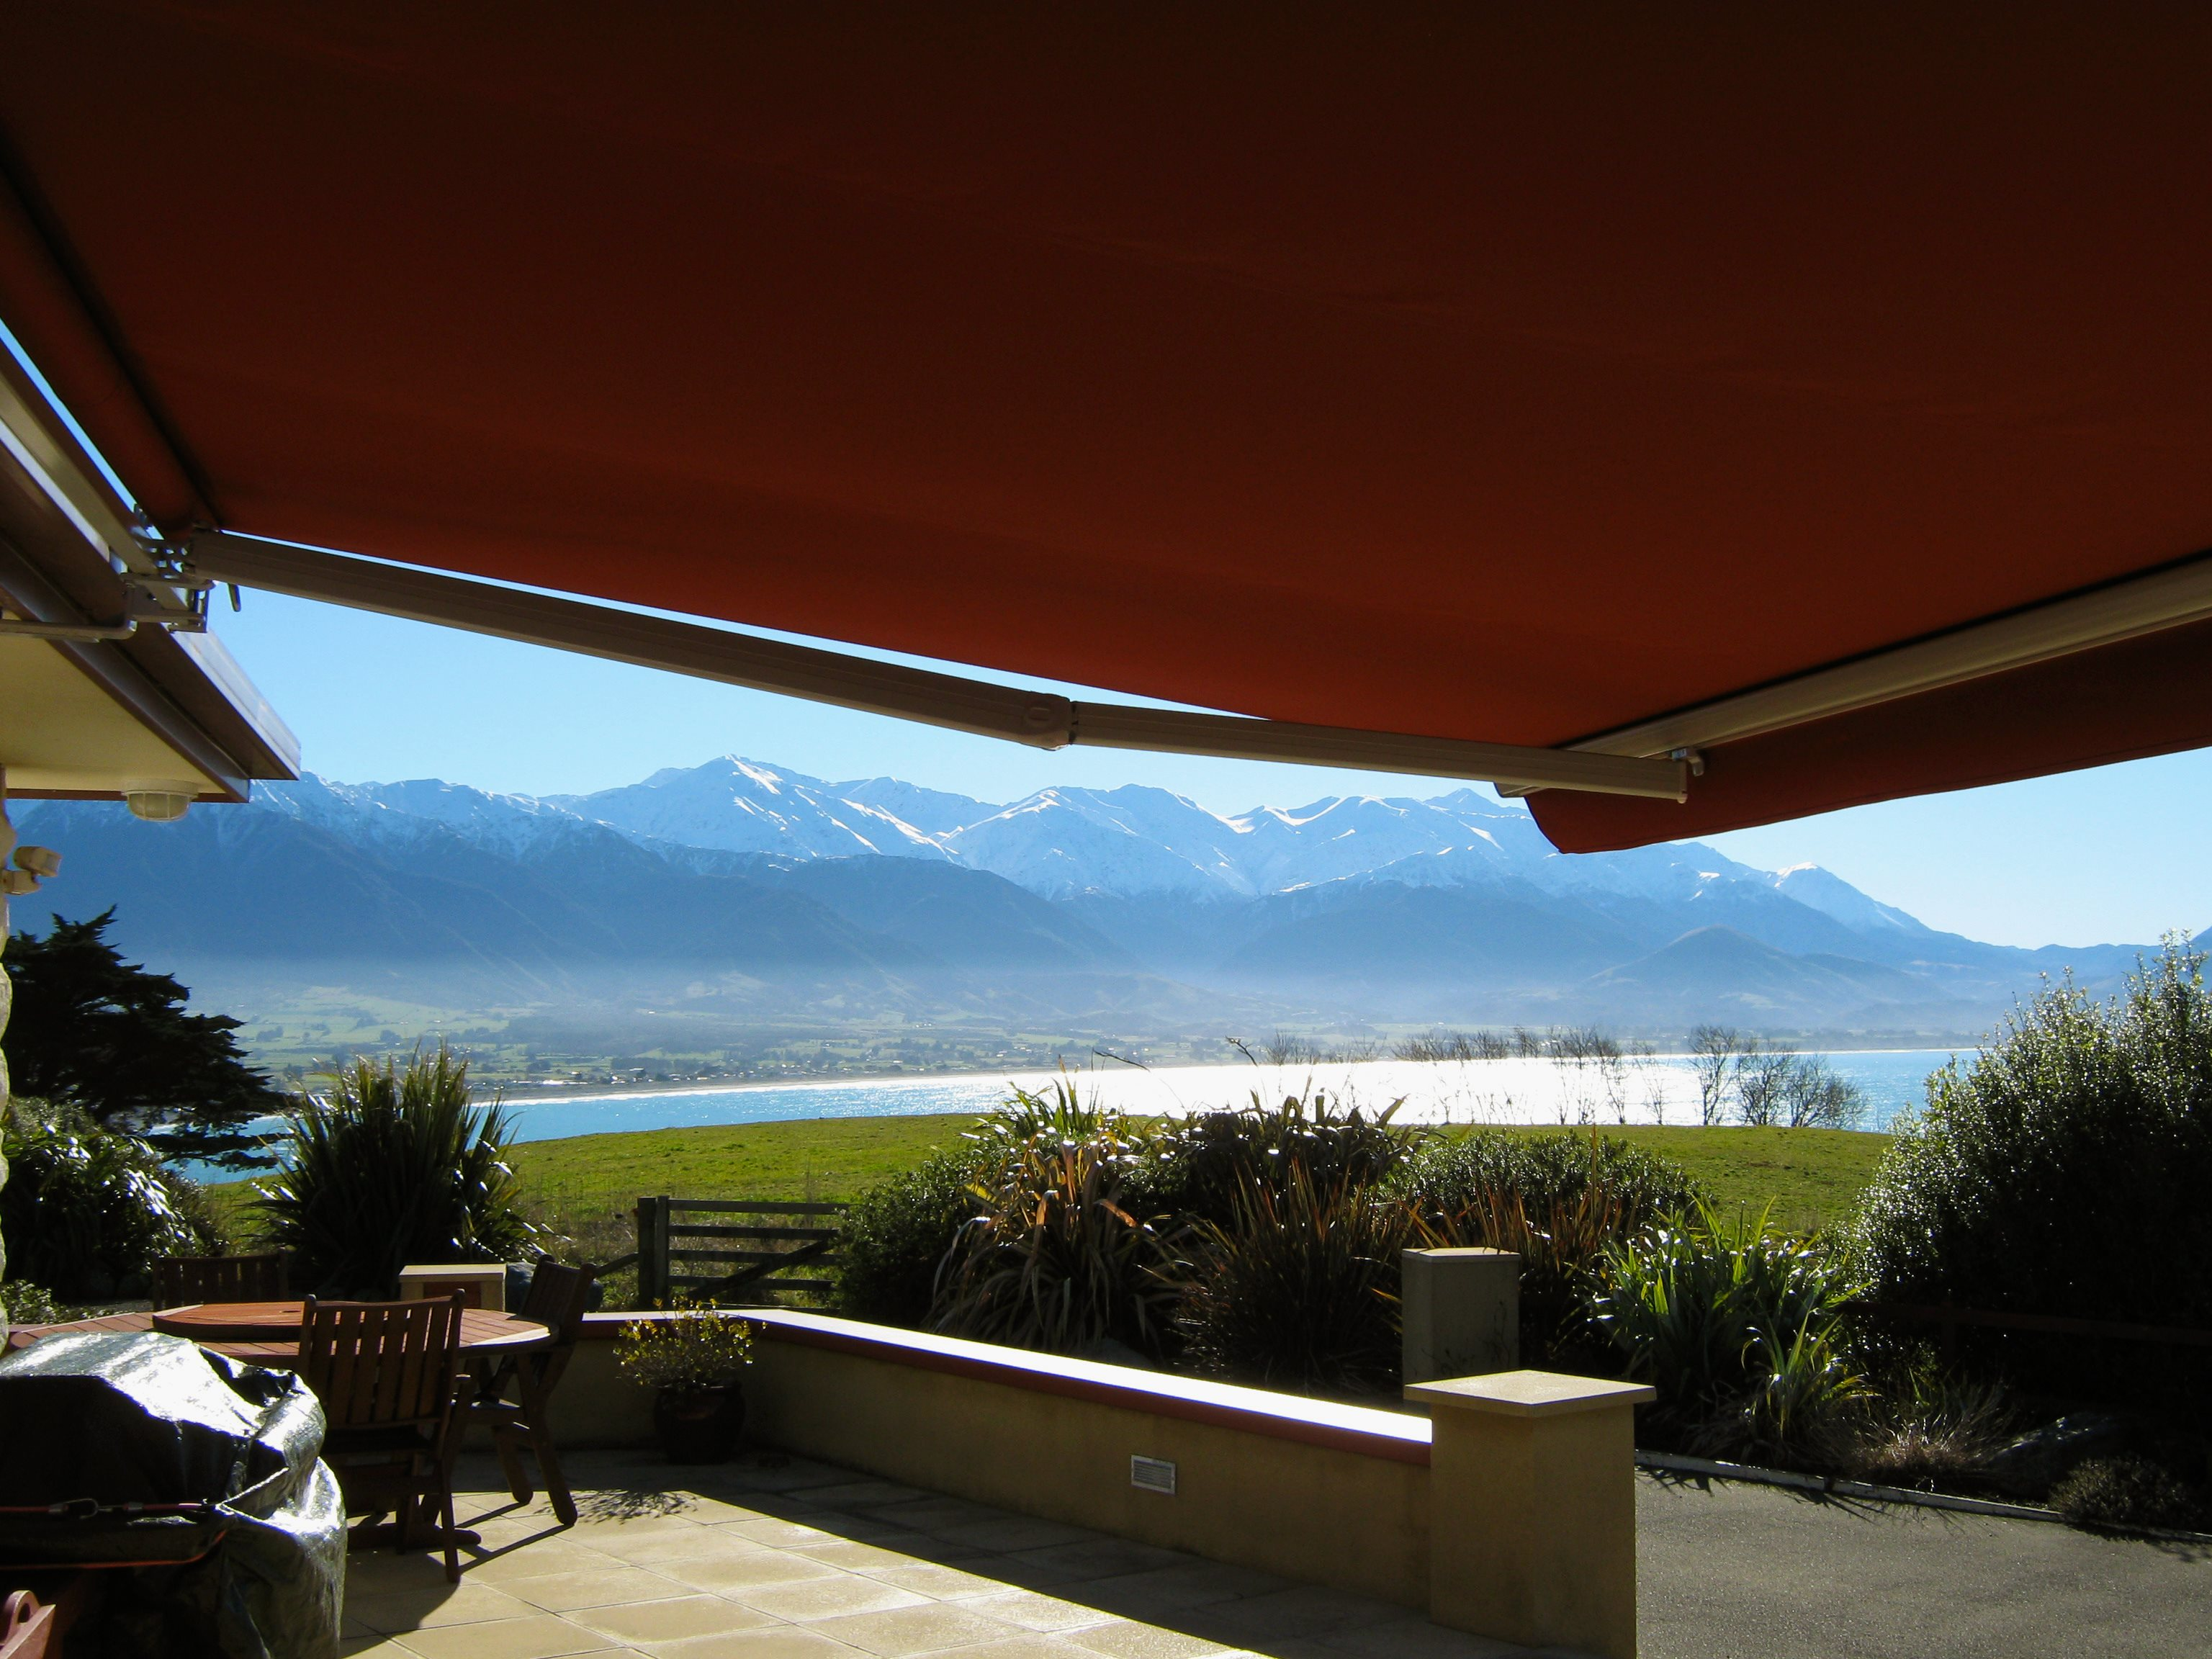 Euro awning  open over porch overlooking mountains